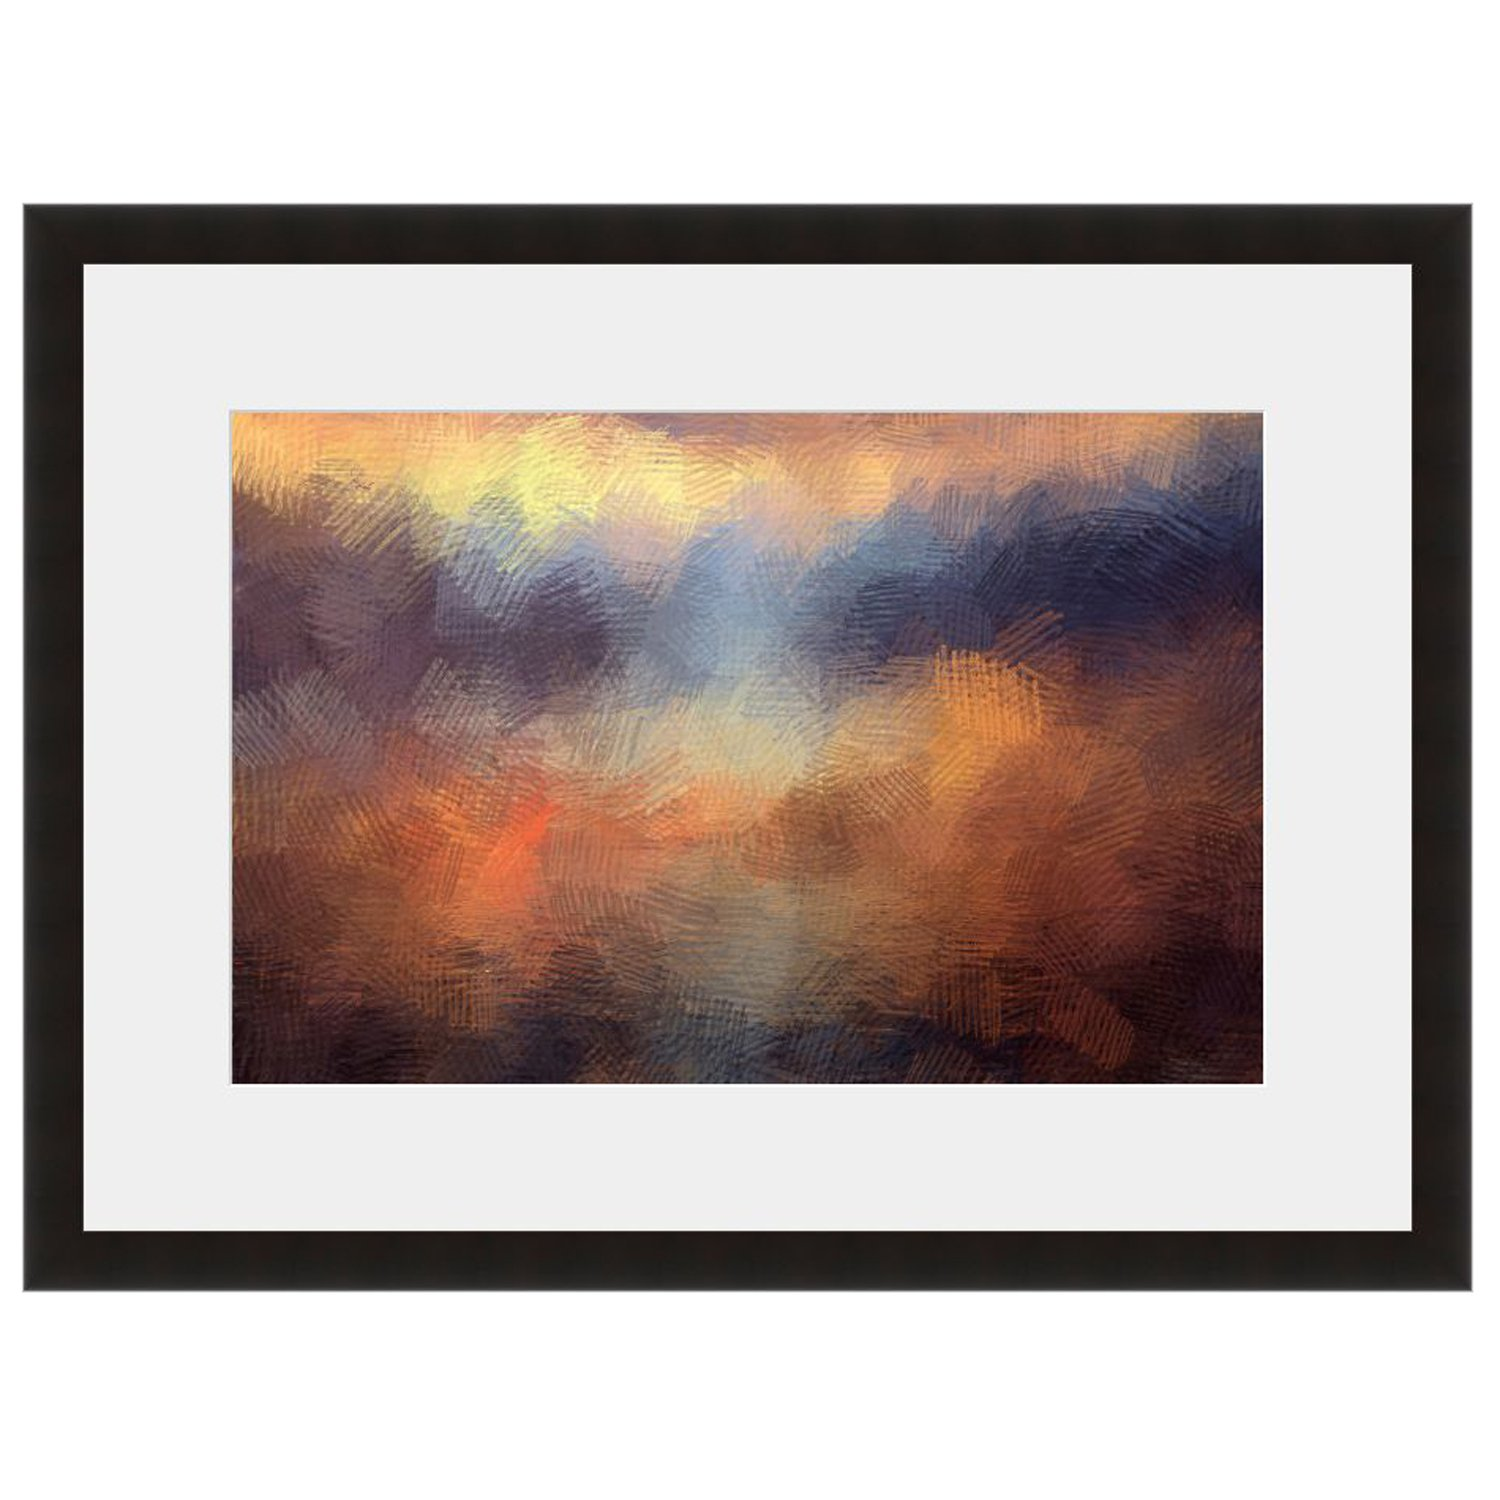 eFrame Fine Art | Abstract Sunset by Keren Lynn 16'' x 24'' Framed and Unframed Wall Art for Wall Decor or Home Decor (Black, Brown, White Frame or No Frame) by eFrame